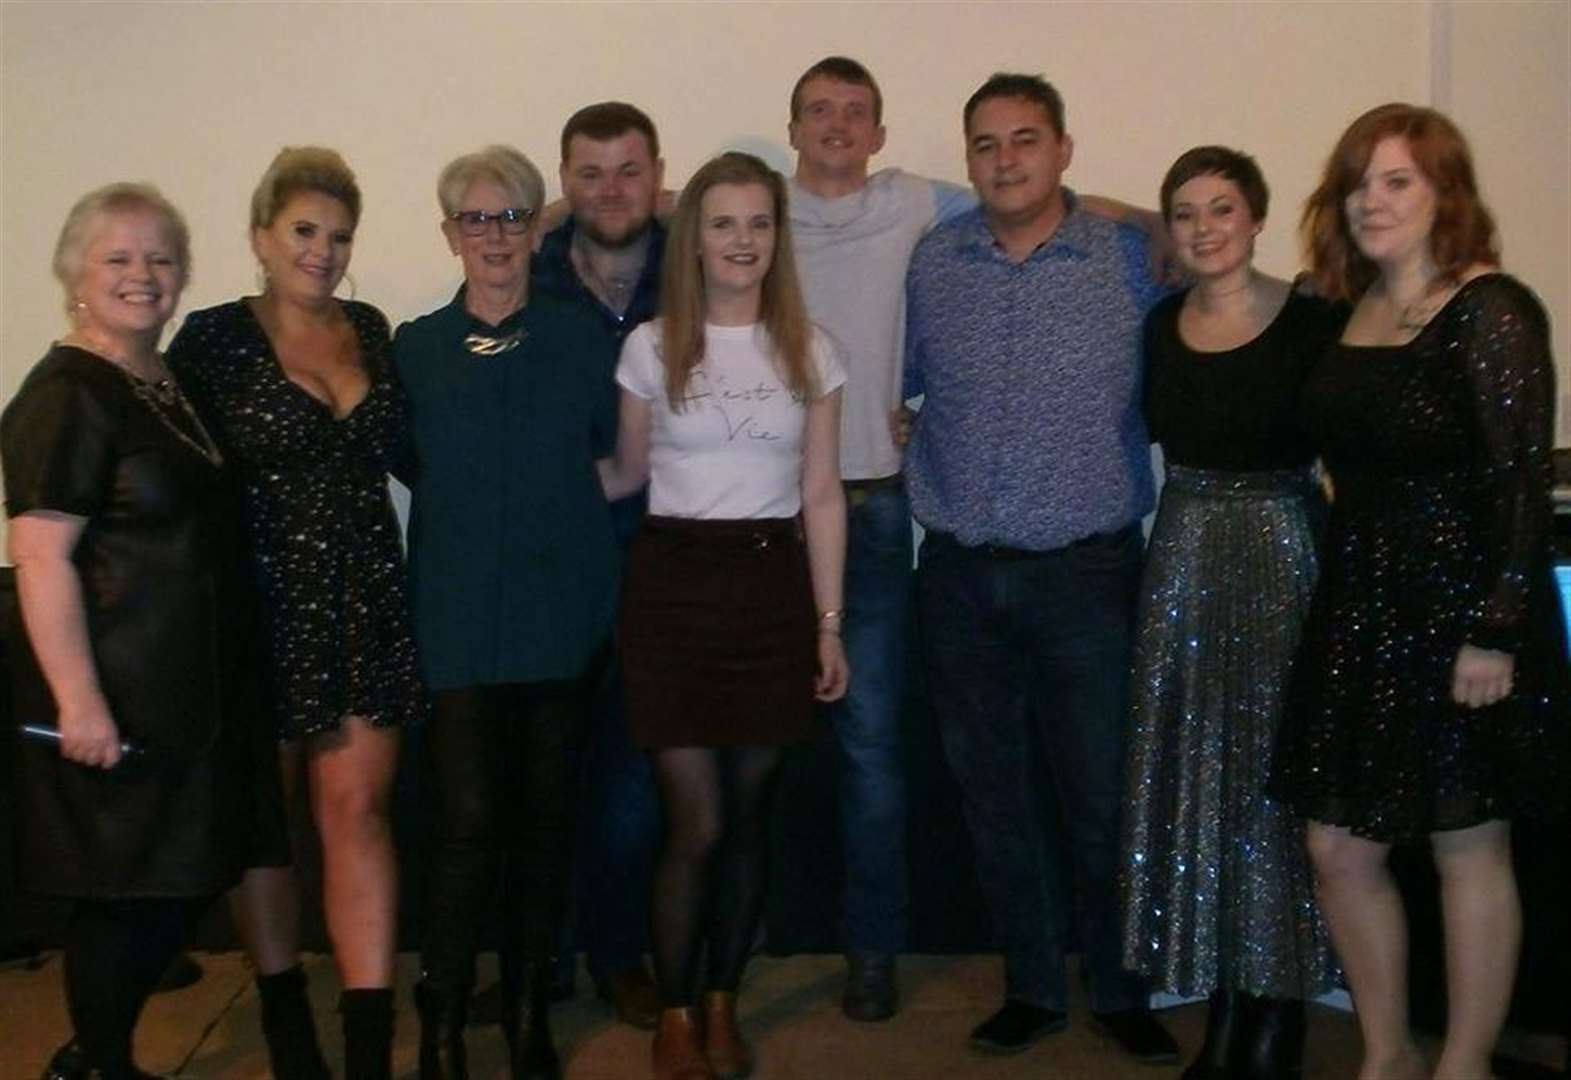 Local talent raised £1500 for good causes